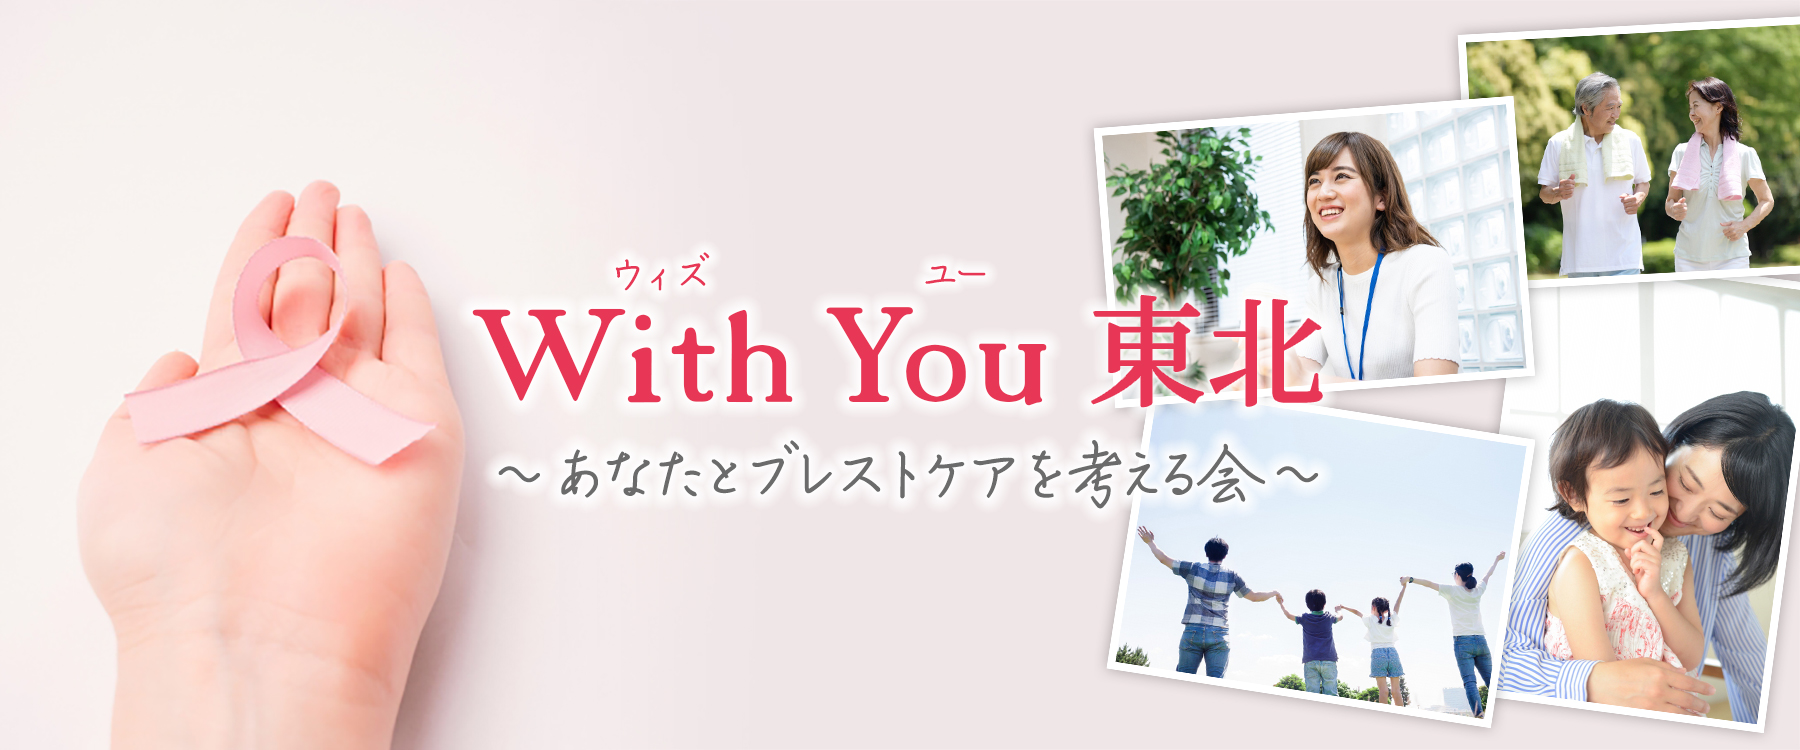 With You 東北〜あなたとブレストケアを考える会